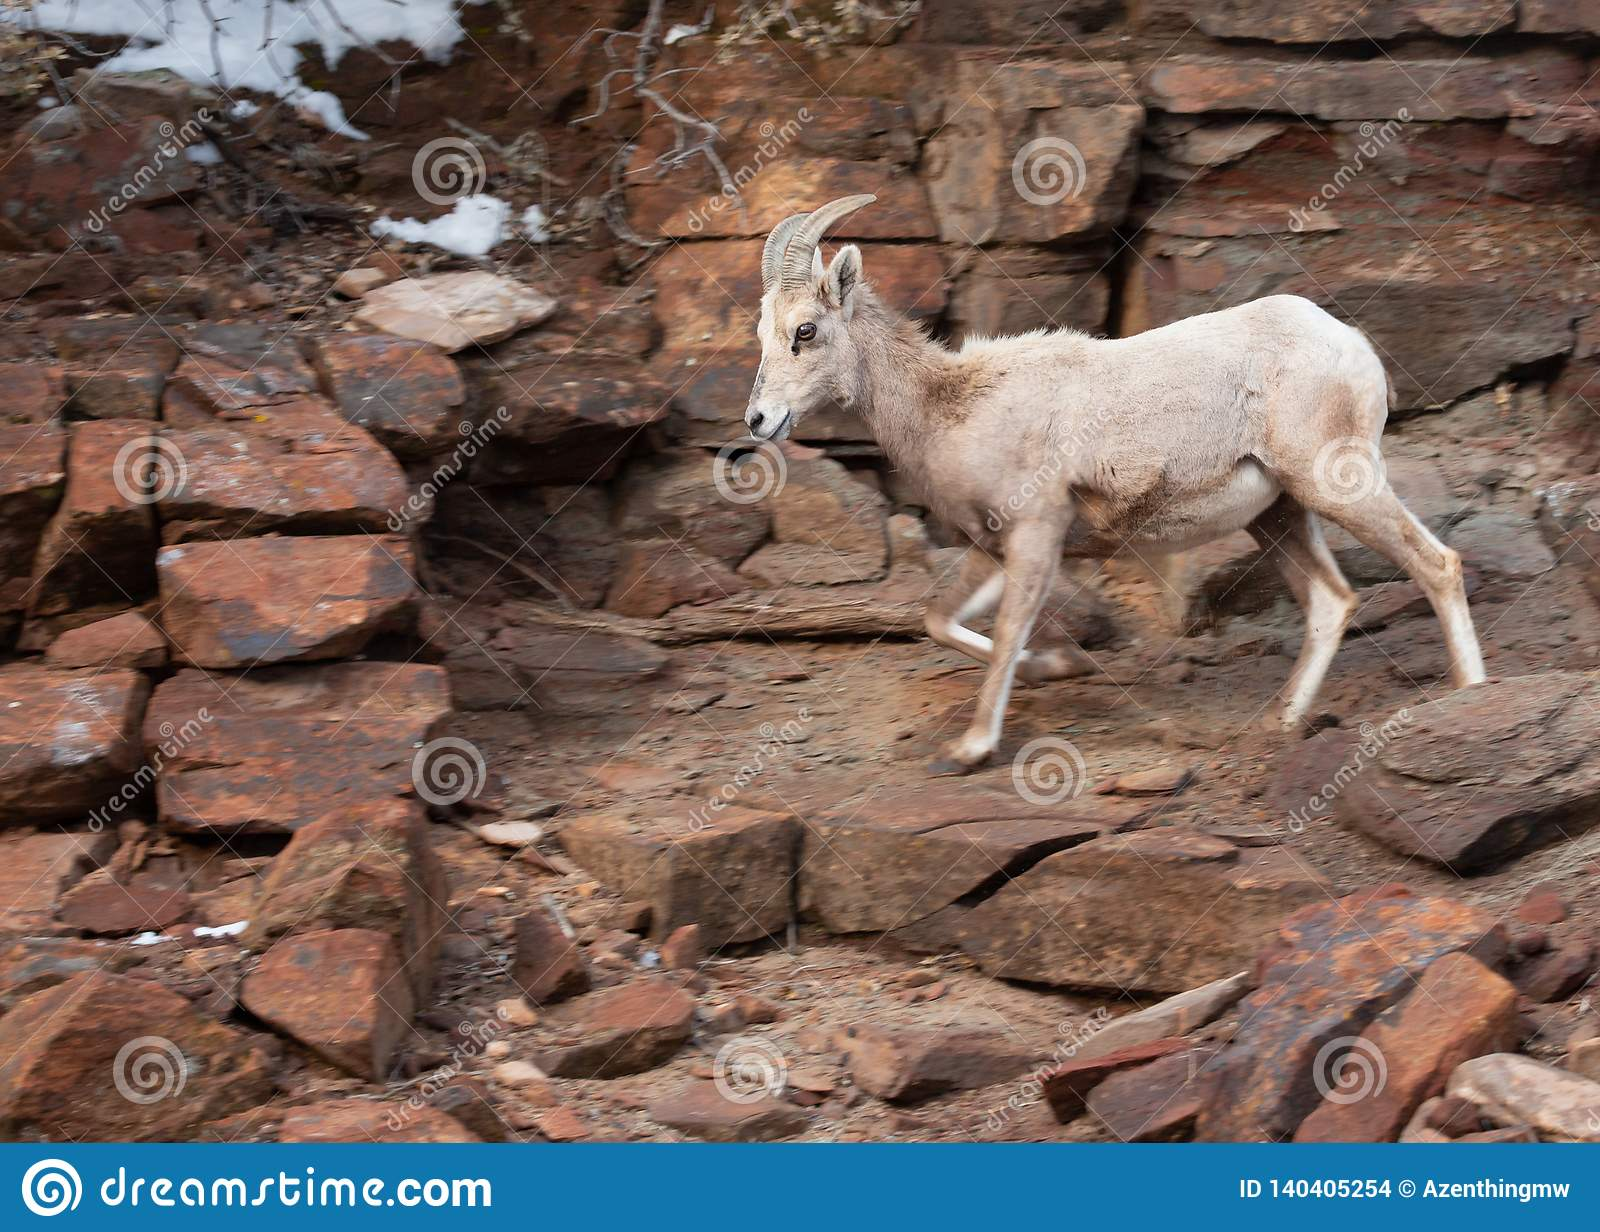 A desert big horned sheep ewe comes down from a snowy slope along a rocky trail in Zion national park Utah